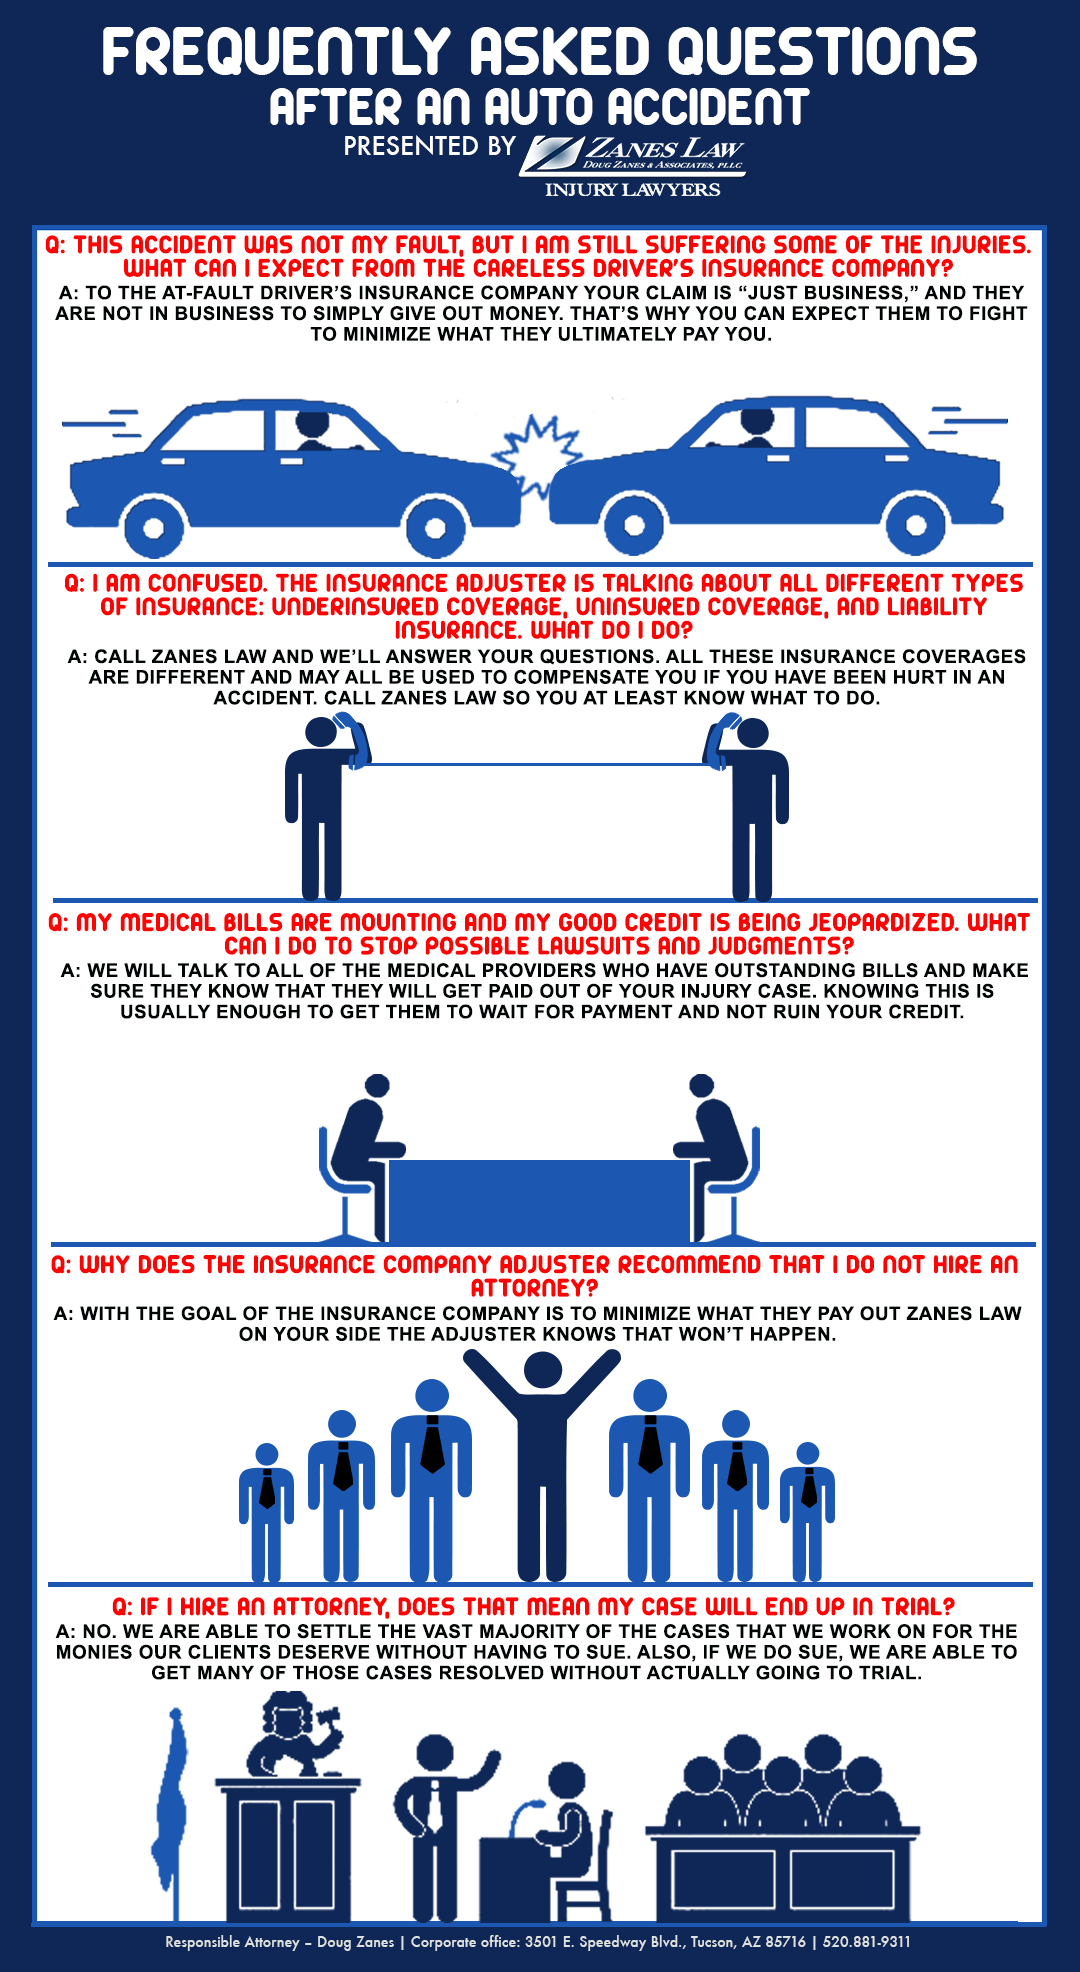 Frequently Asked Questions After An Auto Accident Infographic Auto Accident This Or That Questions Car Insurance Insurance Company